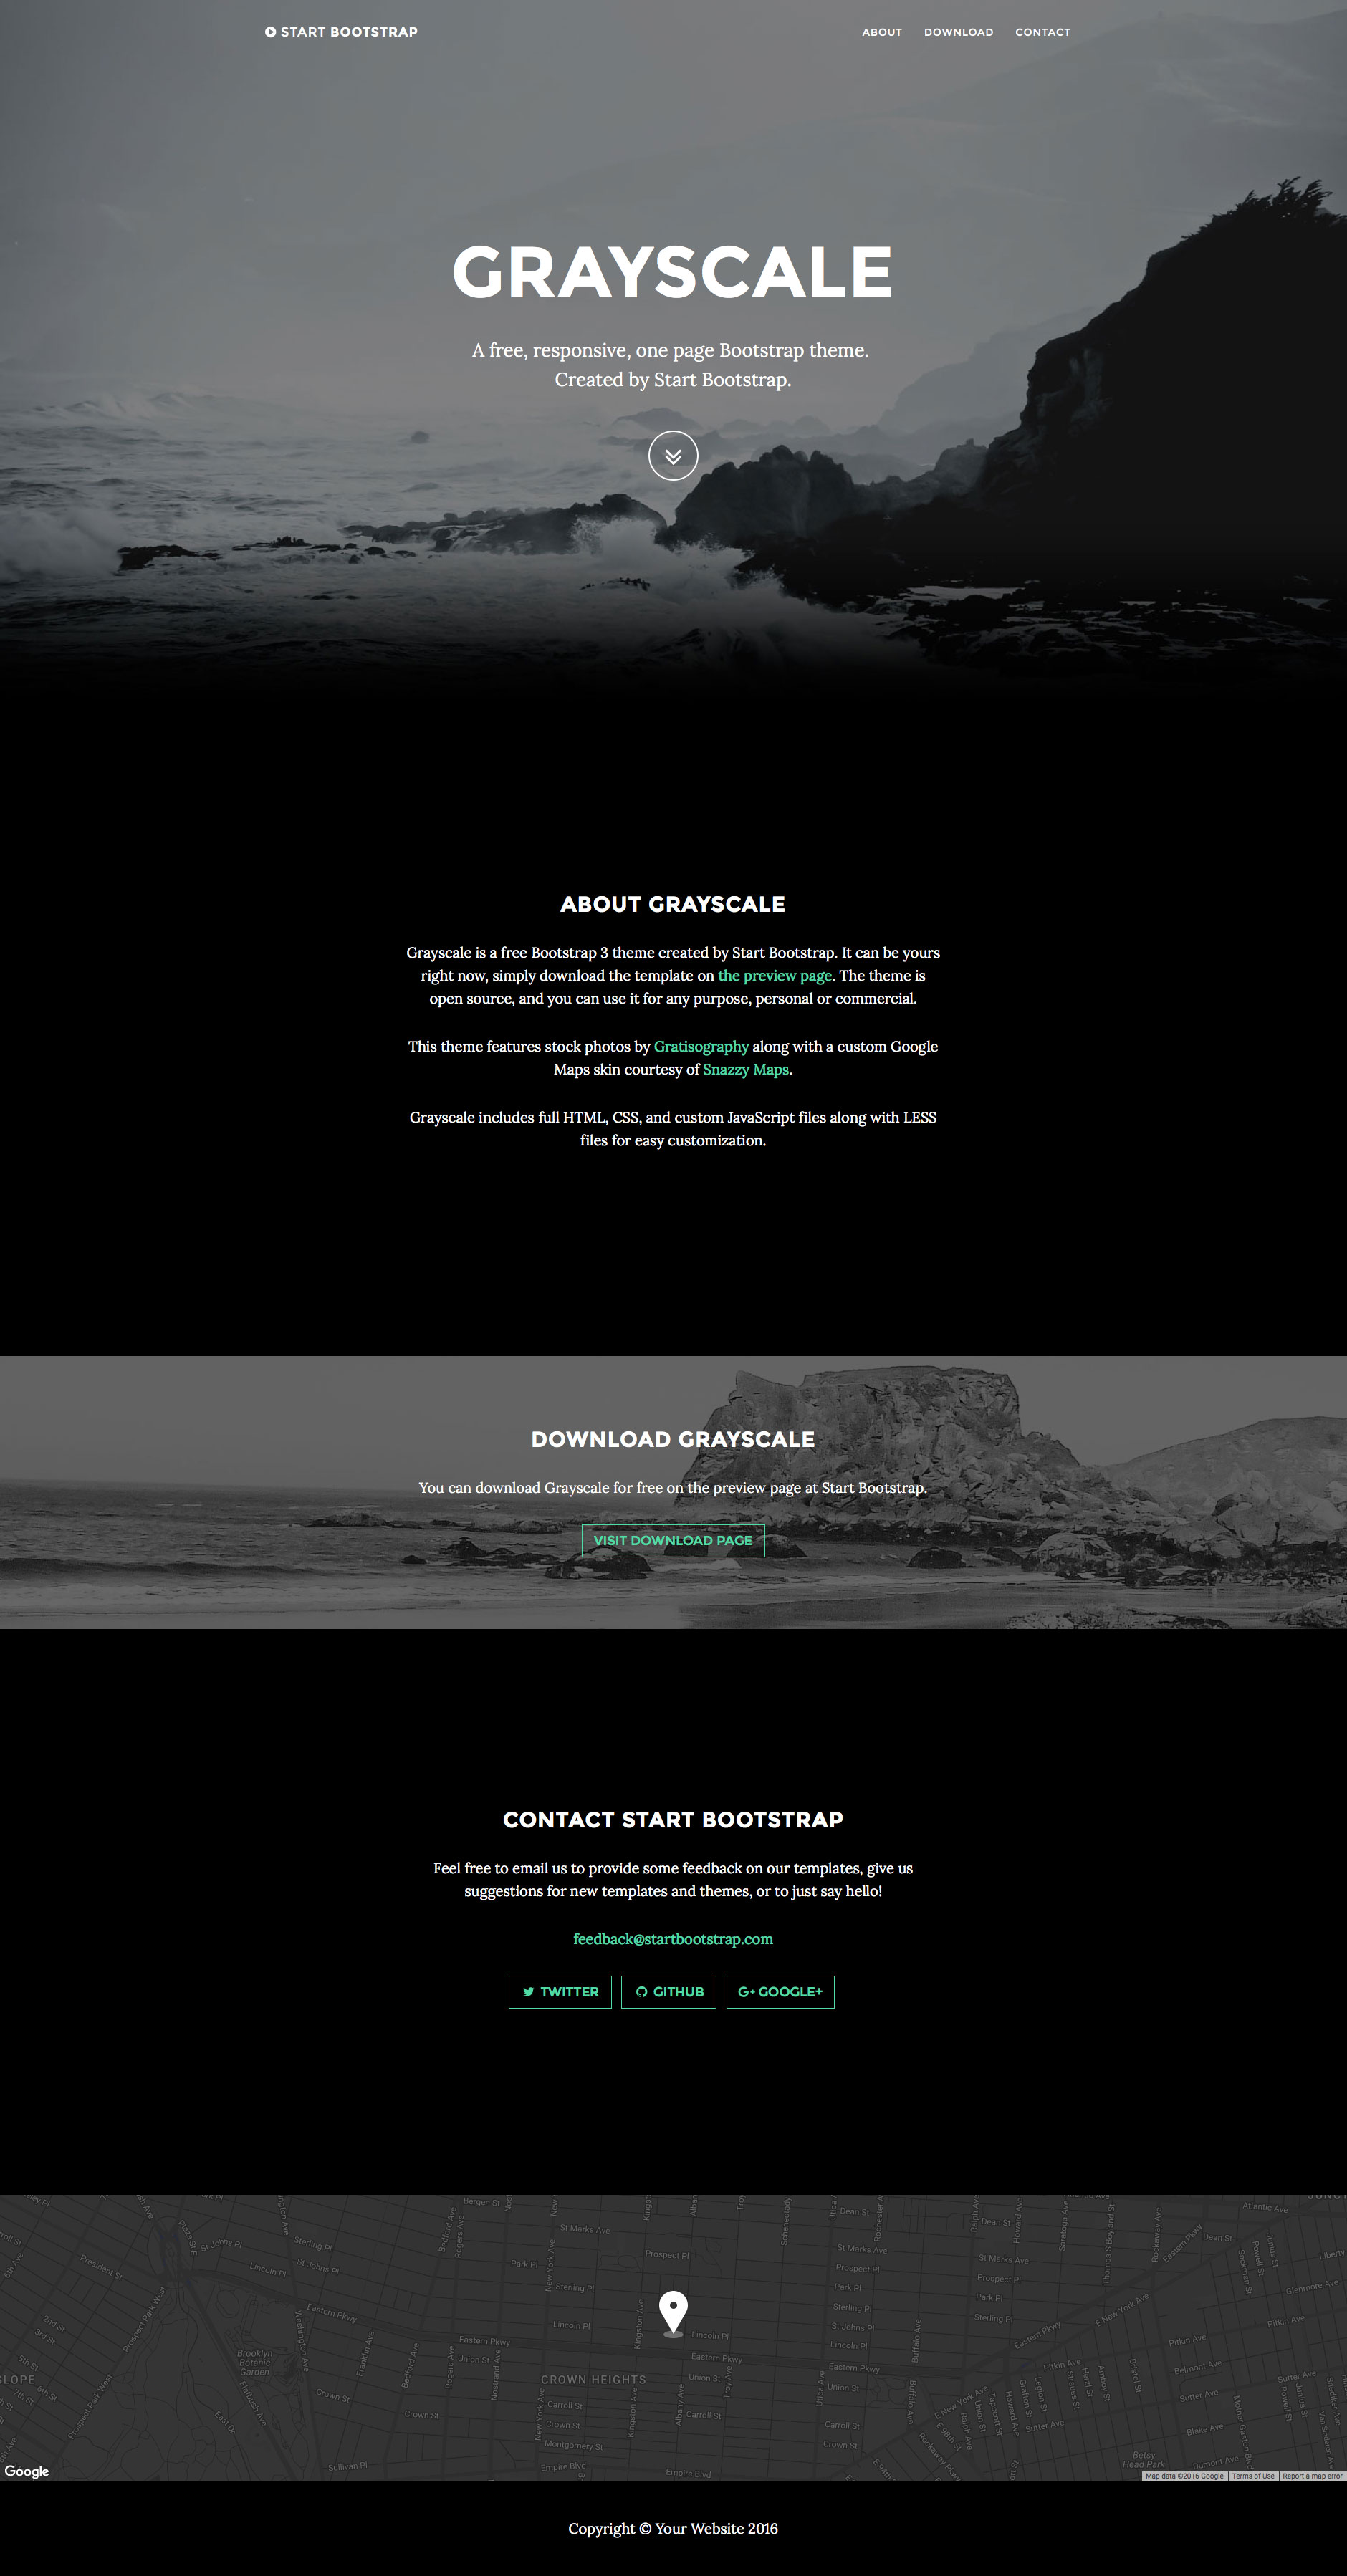 Grayscale is a fully responsive multipurpose HTML5 website template built with the latest HTML5 & CSS3. It features LESS files, fixed top navigation, smooth scrolling, google maps API integration and many more. Grayscale template uses the popular Bootstrap 3 framework.